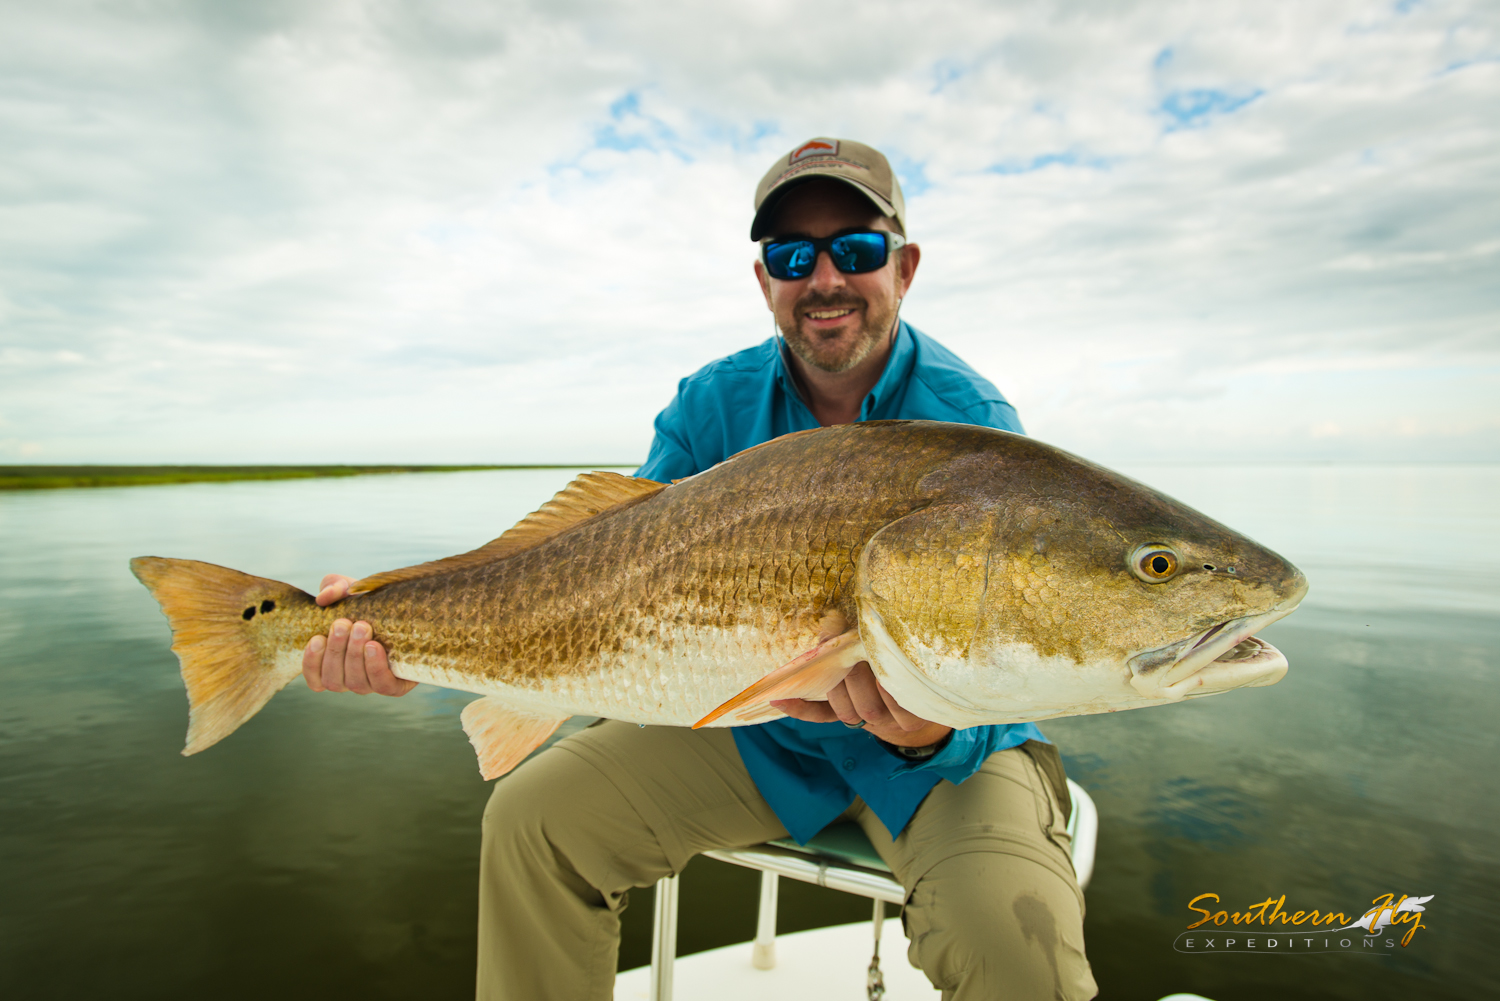 August Fly Fishing Photos - Southern Fly Expeditions and Captain Brandon Keck Fly Fishing Guide New Orleans